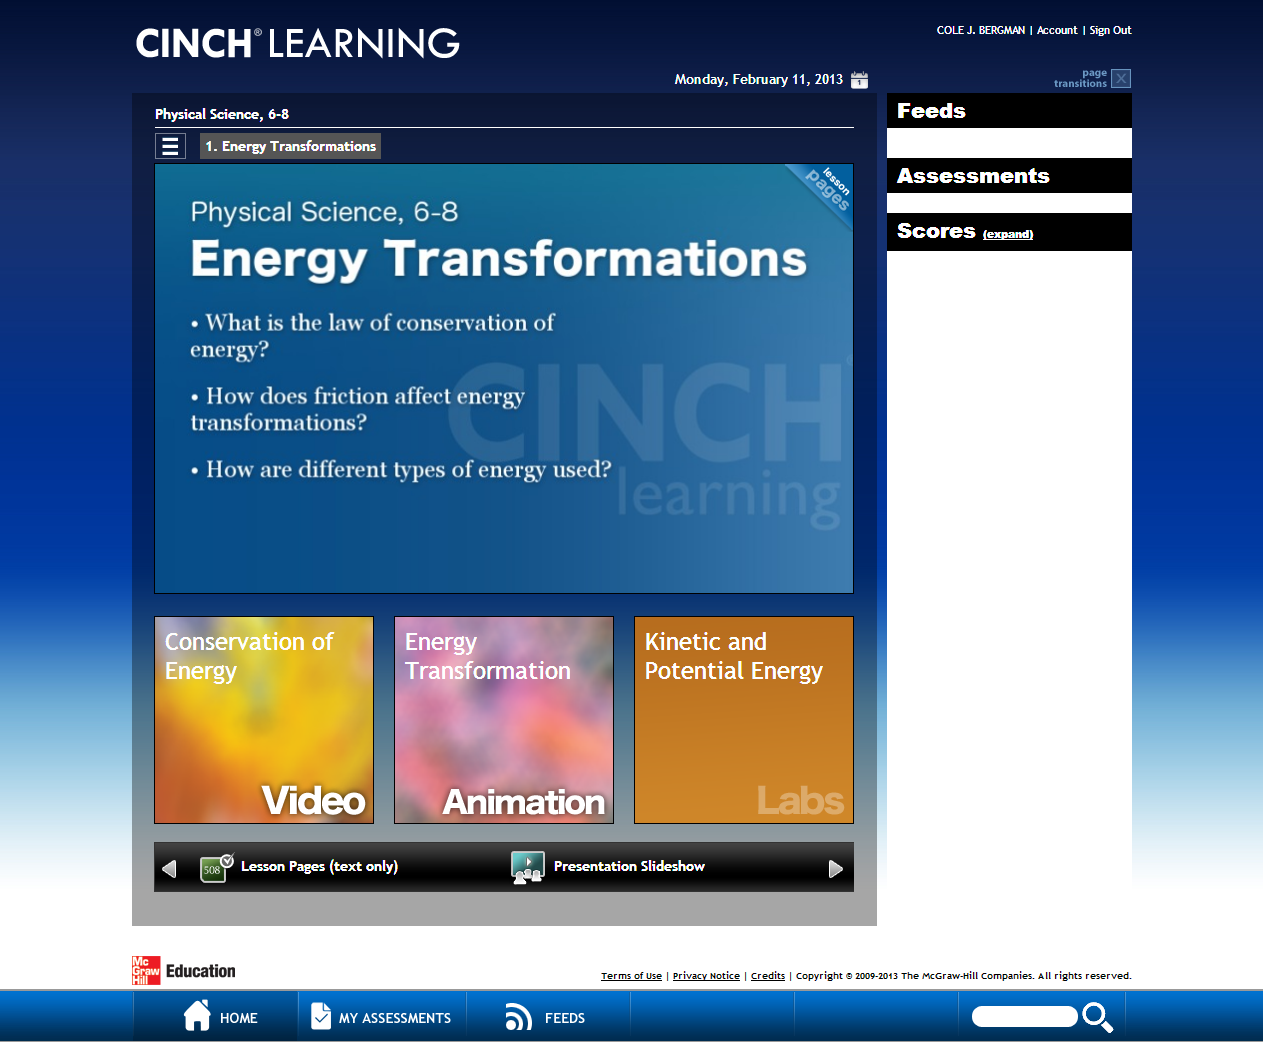 Seyfert's Sixth: Science and Cinch Learning